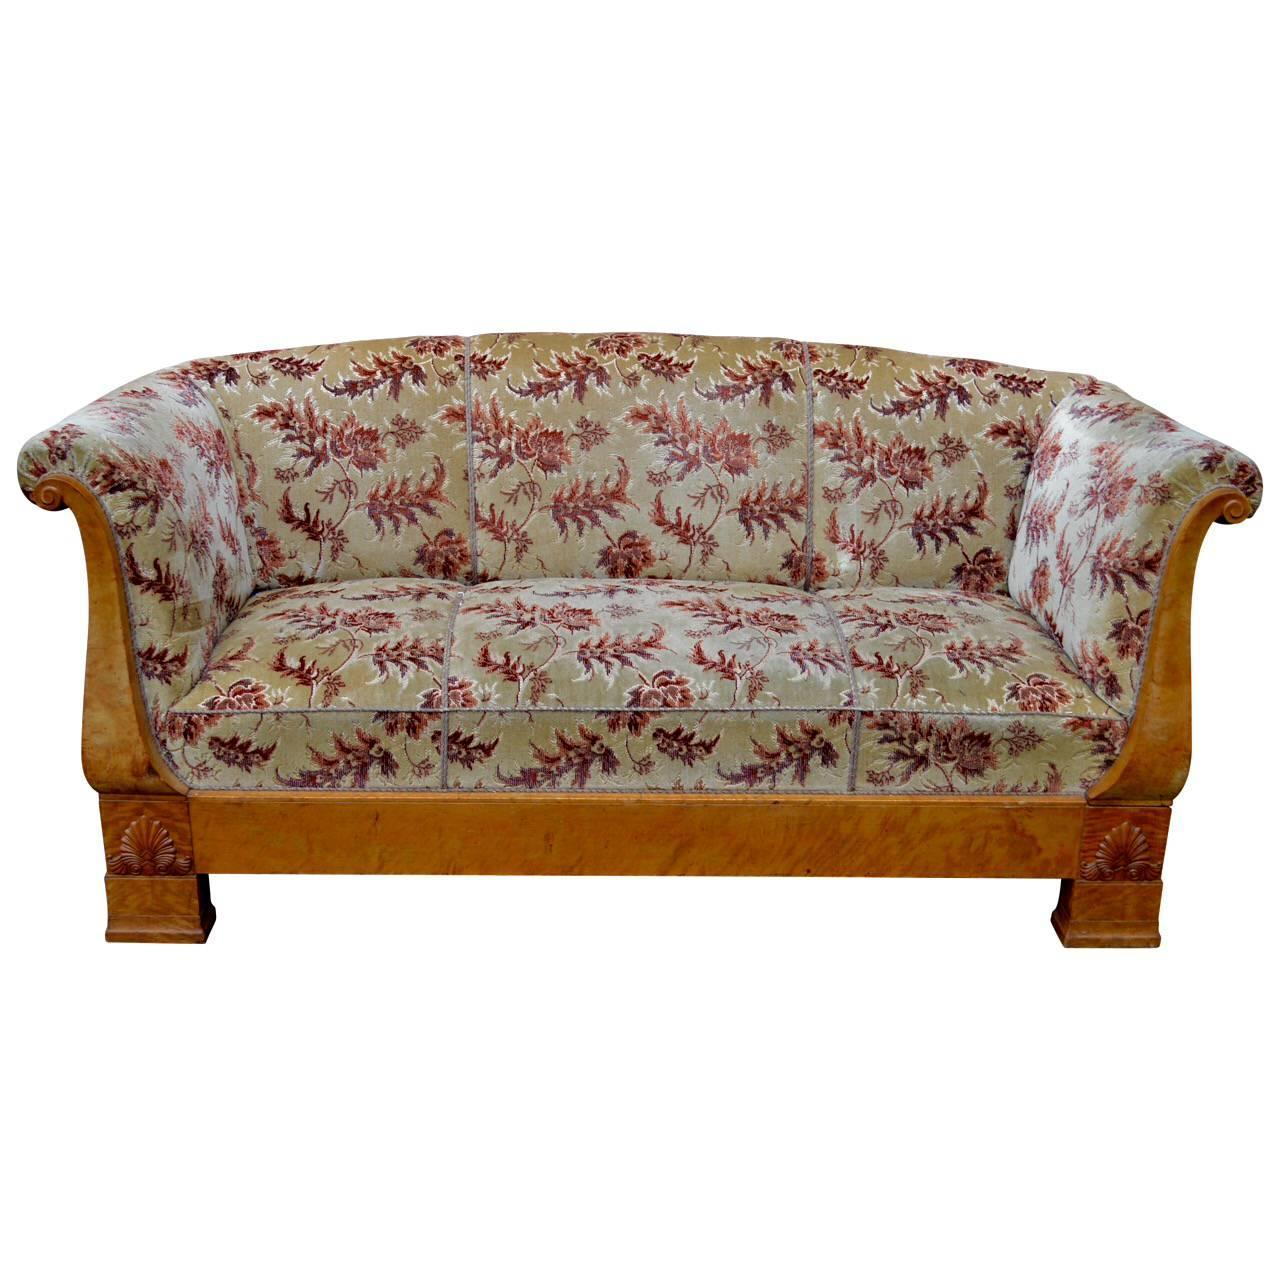 Swedish biedermeier sofa at 1stdibs Biedermeier sofa